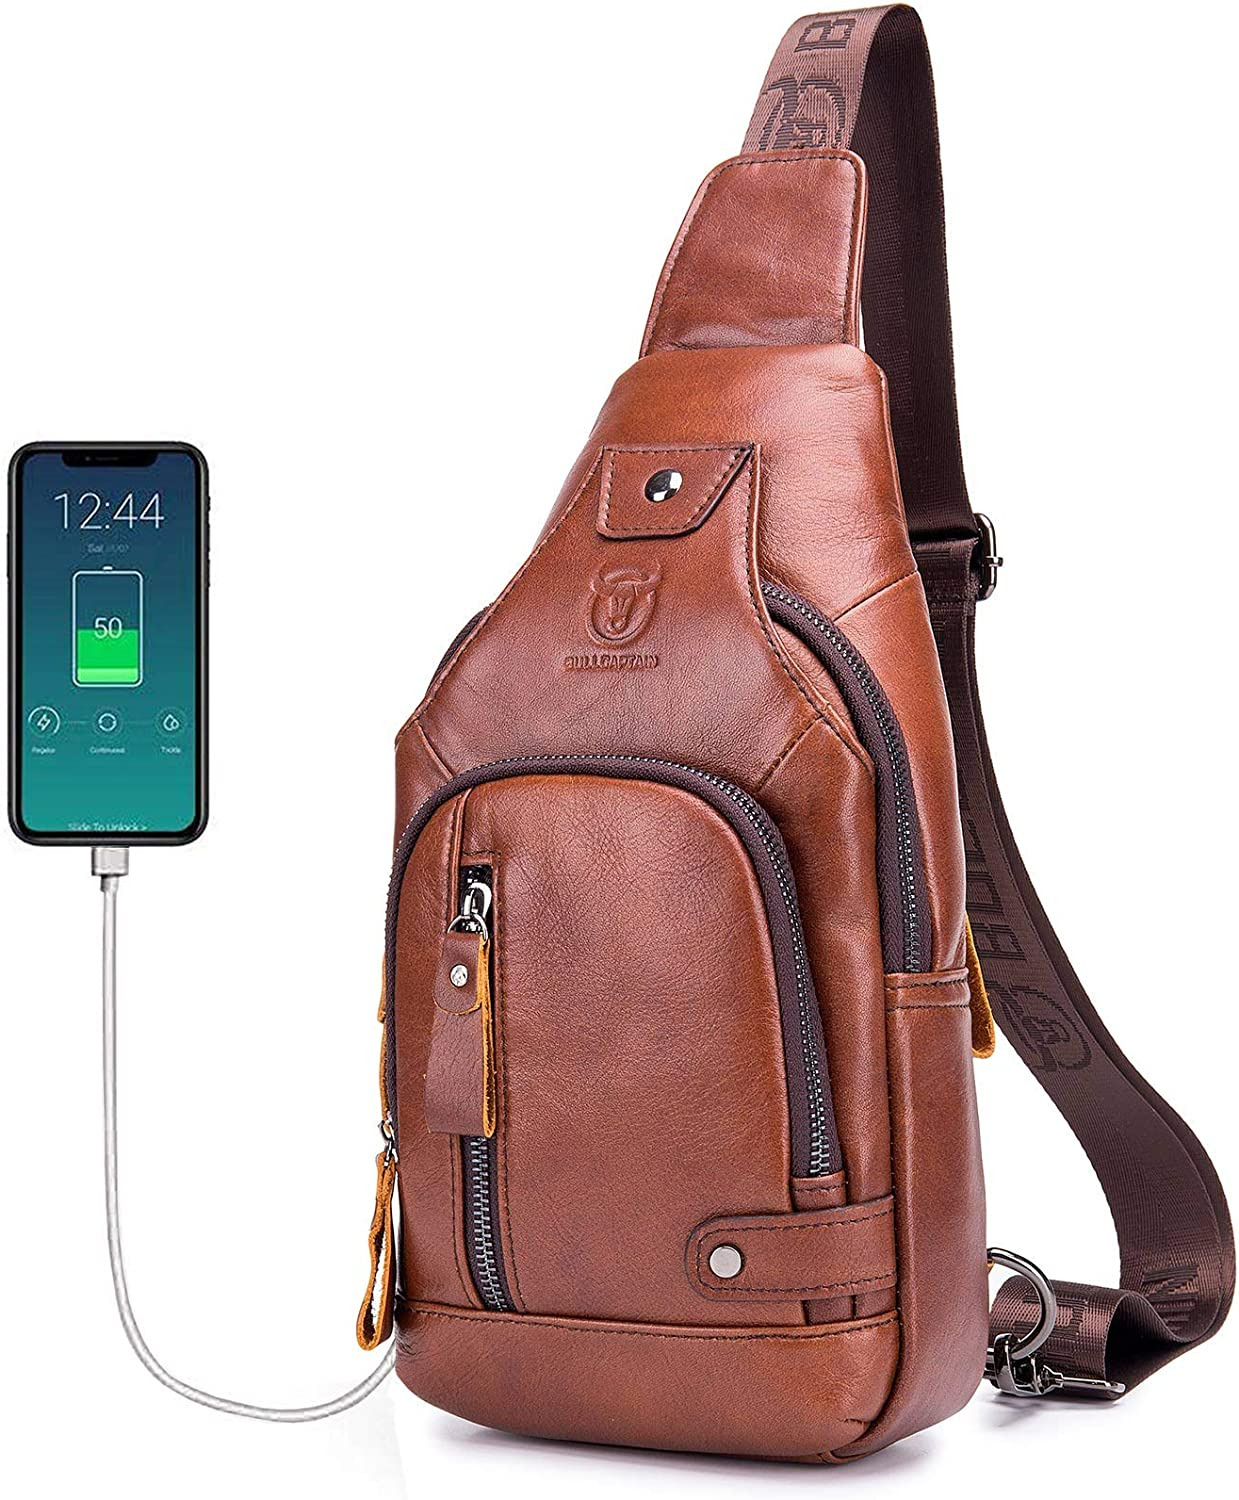 Mens Genuine Leather Sling Bag,Casual Crossbody Shoulder Backpack Travel Hiking Vintage Chest Bag Daypacks for Men with Charging Port